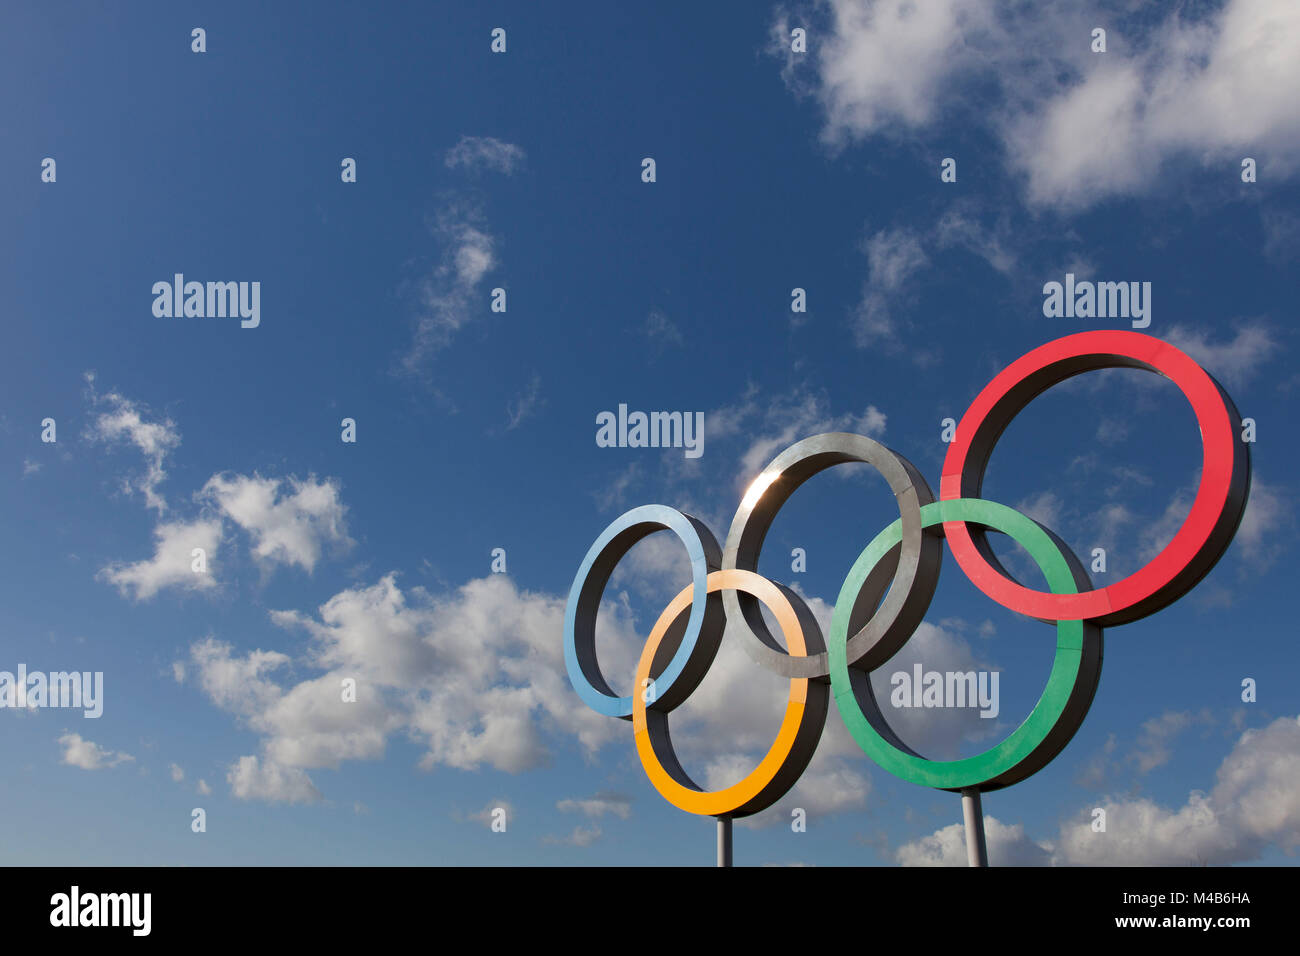 LONDON, UK - February 15th 2018: The Olympic symbol, made up of five interconnected coloured rings, under a blue - Stock Image